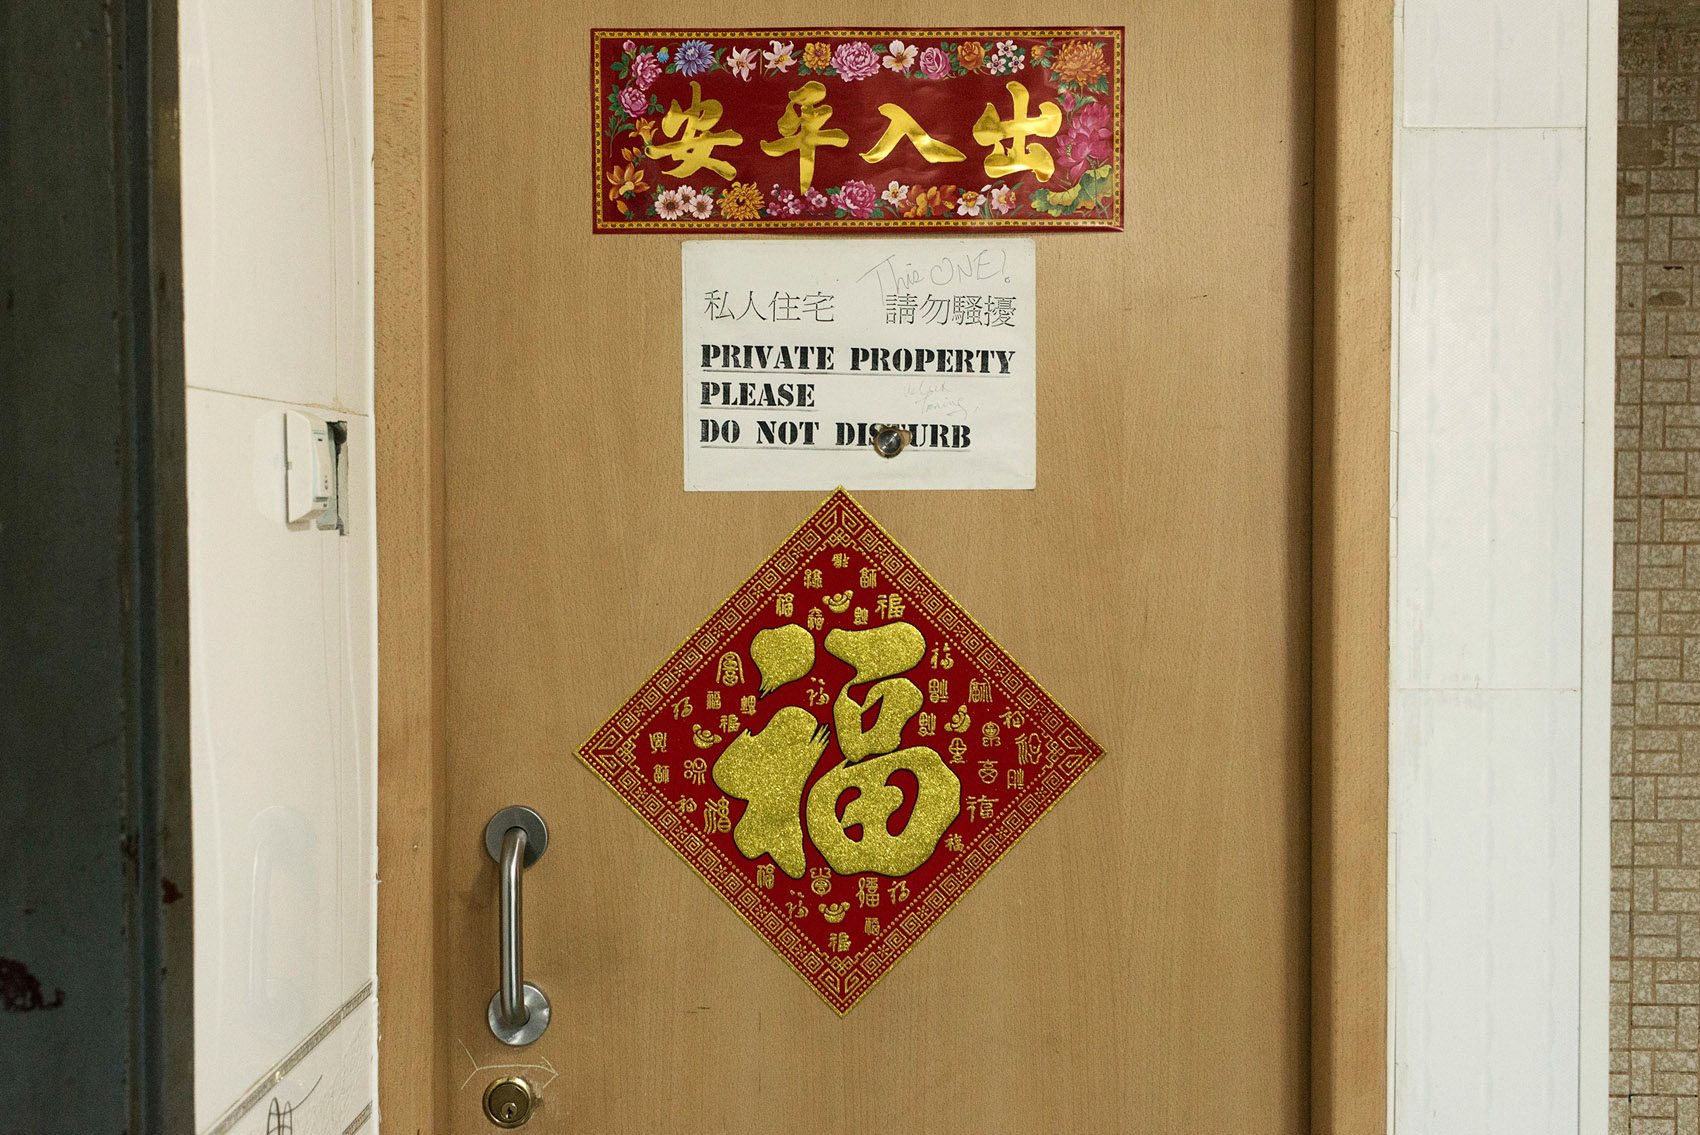 Inside the Chungking Mansions, the door of a private apartment where a Chinese family is living. Most of the residents of the Mansions are transient workers and hostels guests. However a few families live there in spite of the building bad reputation..